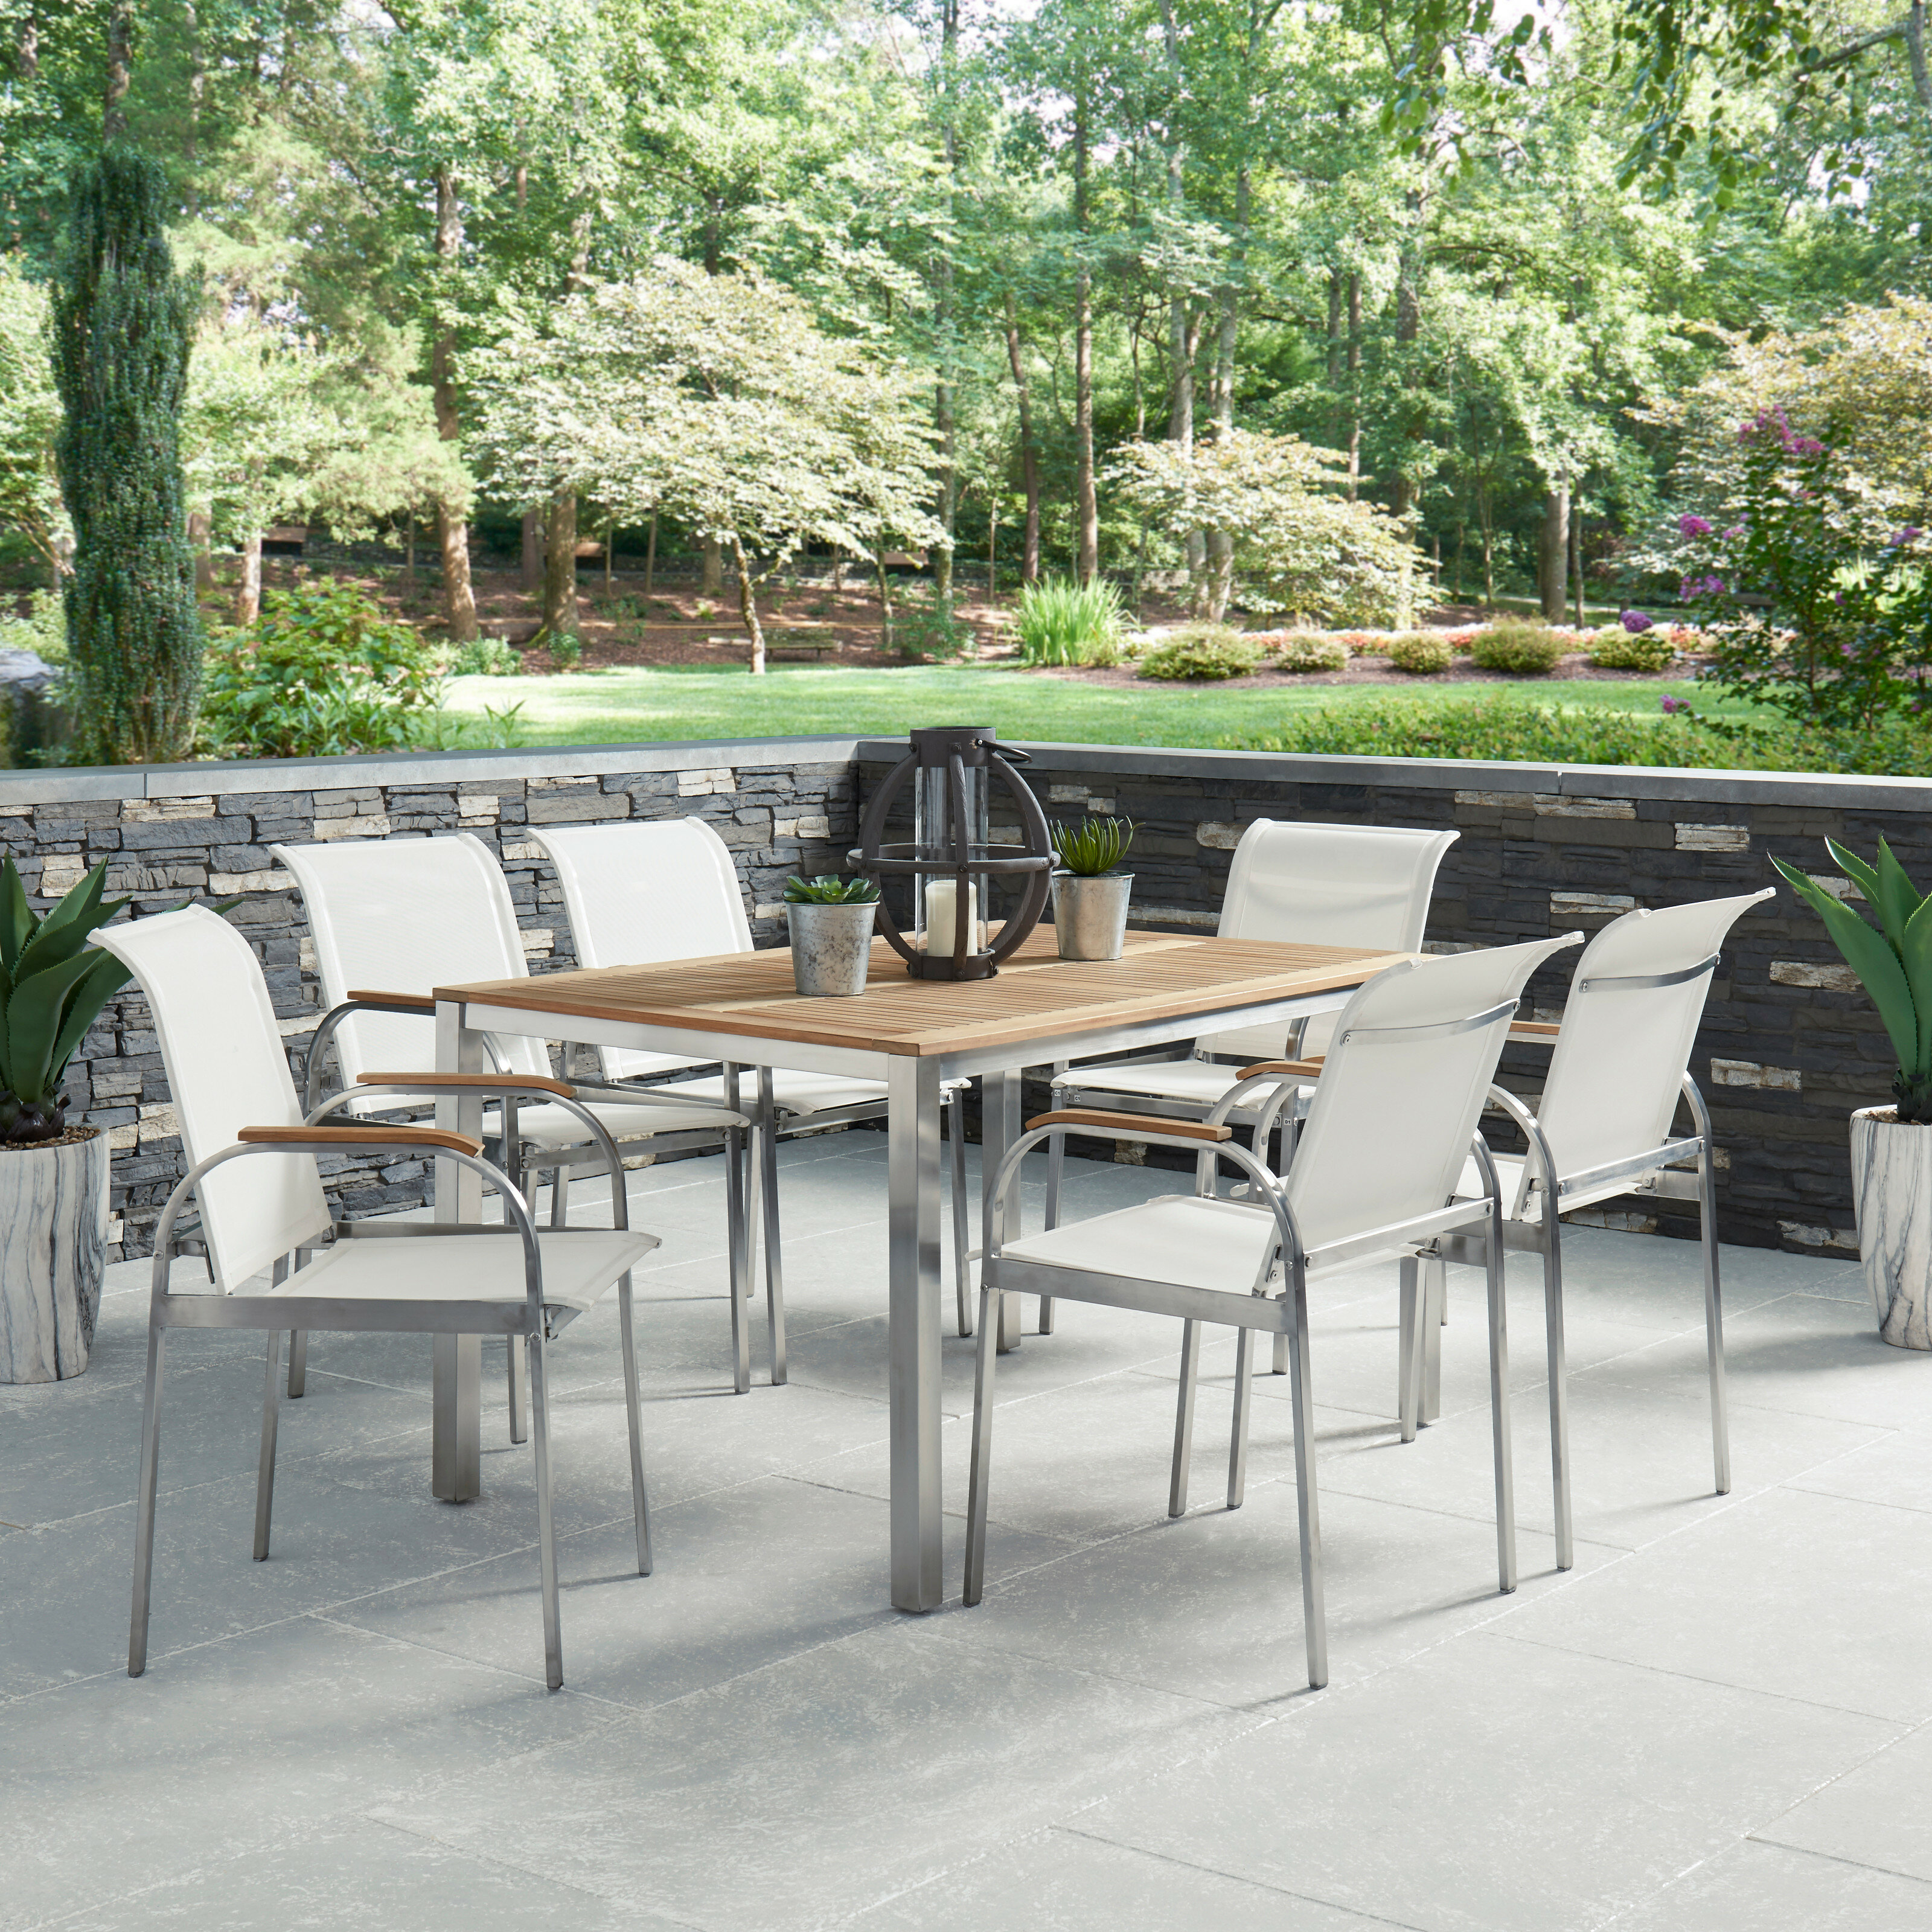 Merrit 7 Piece Teak Dining Set